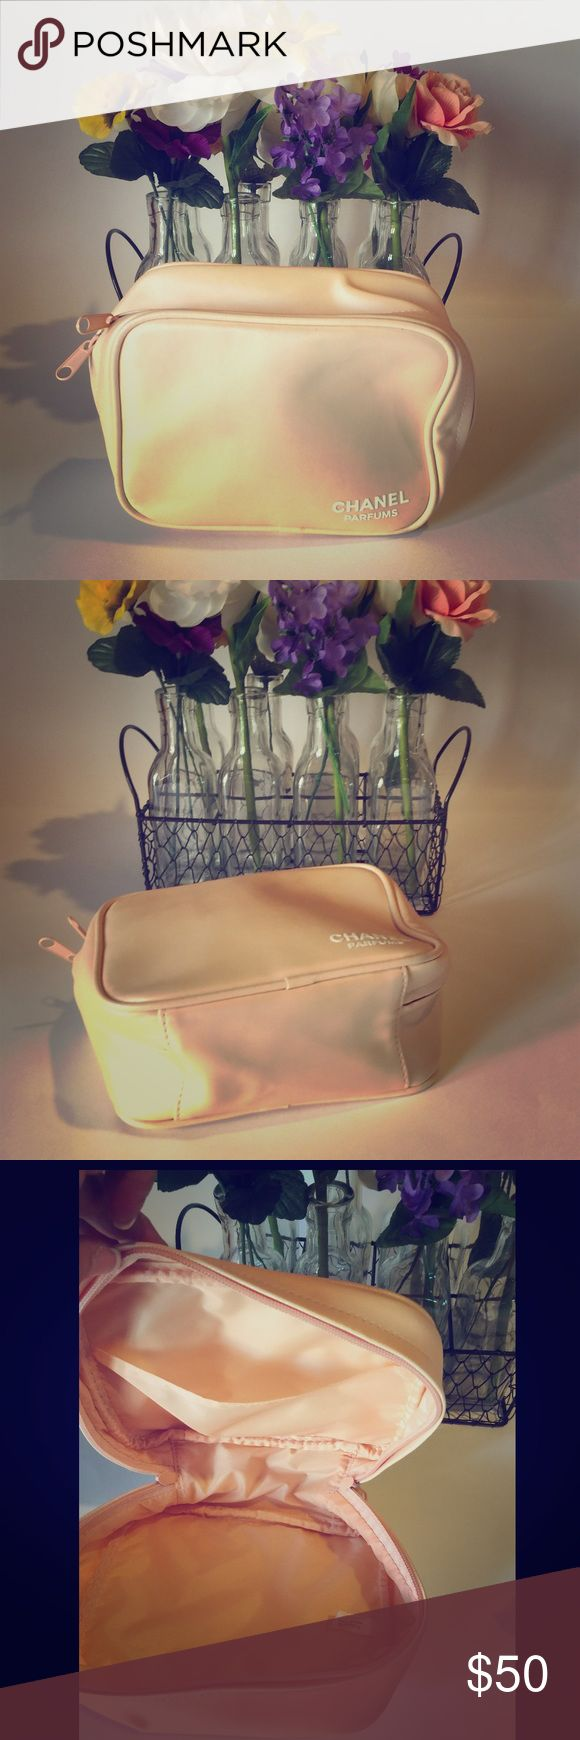 AUTHENTIC CHANEL MAKEUP BAG OR TRAVEL CASE HAS A FEW RUB MARKS OTHER WISE NOT NOTICEABLE UNLESS U LOOK FOR IT PRICED ACCORDINGLY PERFECT FOR TRAVEL OR FOR MAKEUP OR A SMALL BAG FOR YOUR CAR SWEET PEACH COLOR FOR CHANEL CHANCE CHANEL Bags Cosmetic Bags & Cases